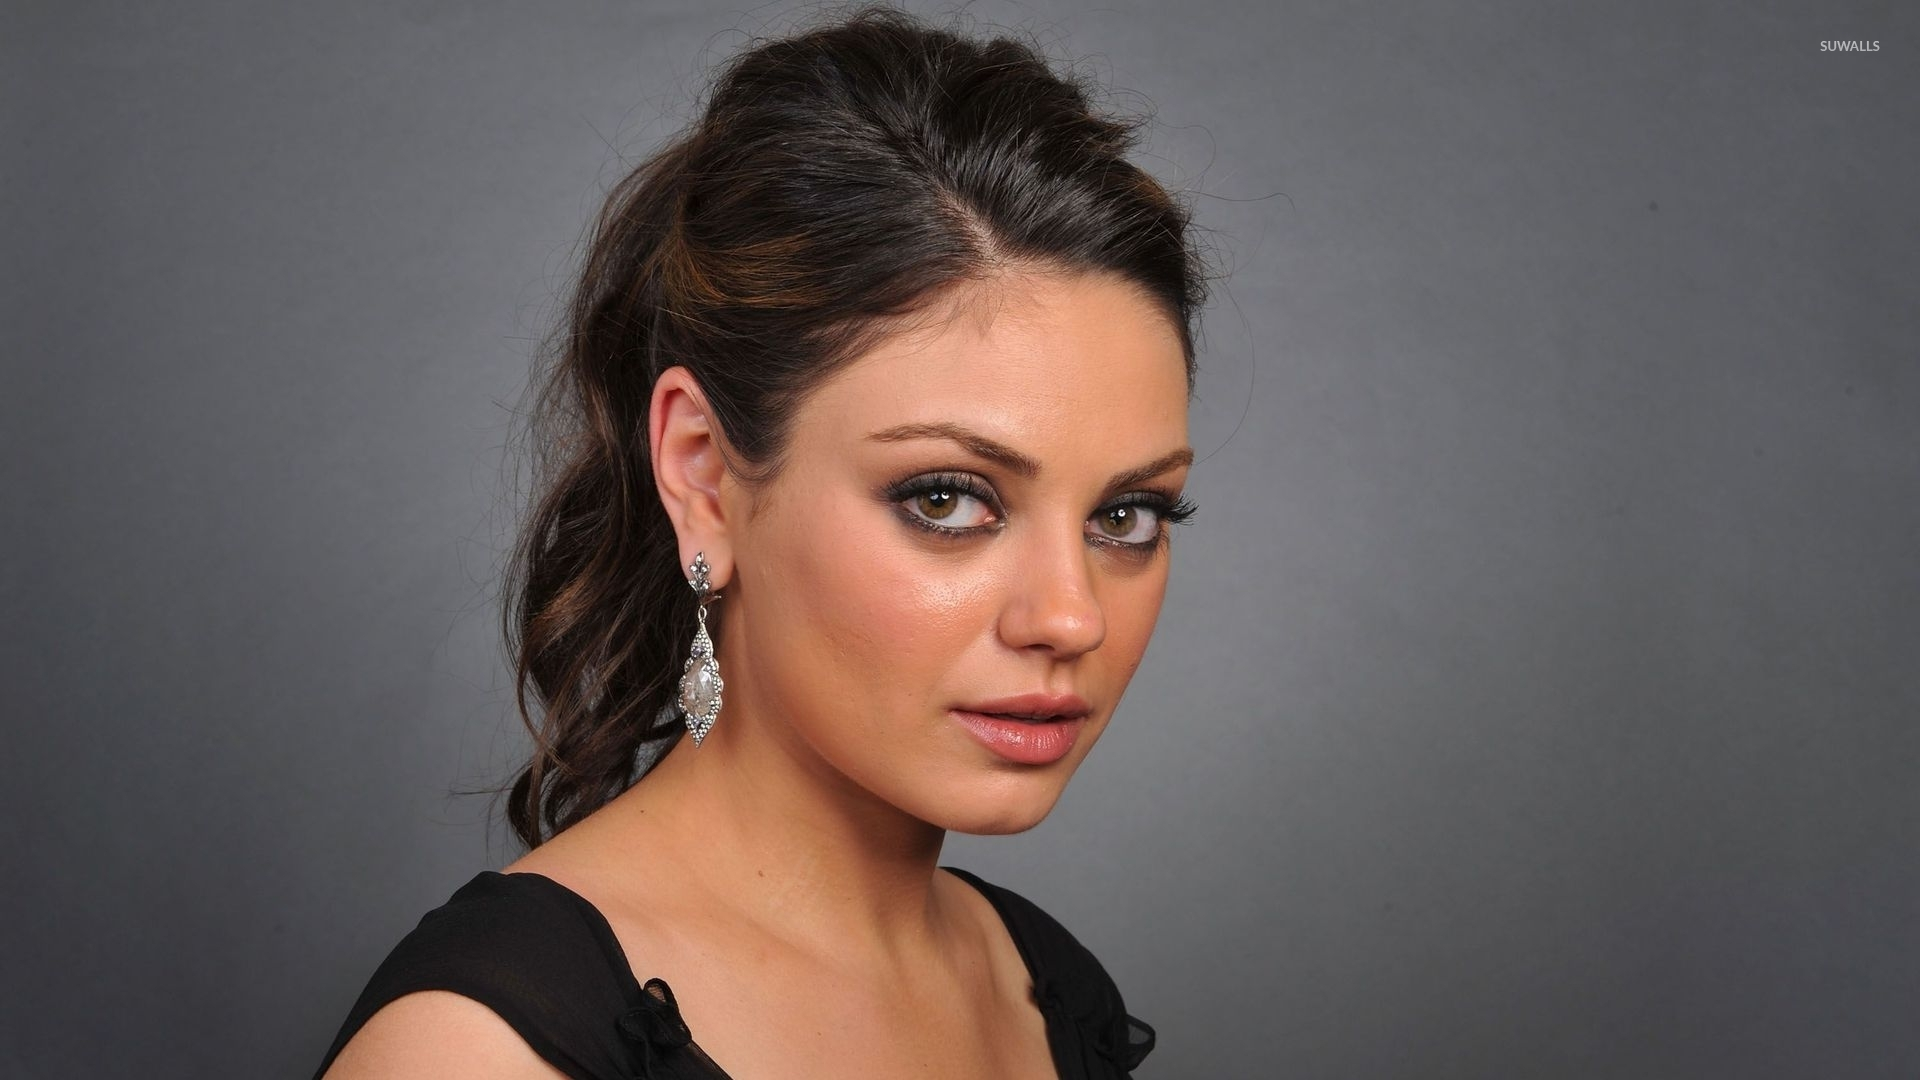 mila kunis with a black top wallpaper - celebrity wallpapers - #49244